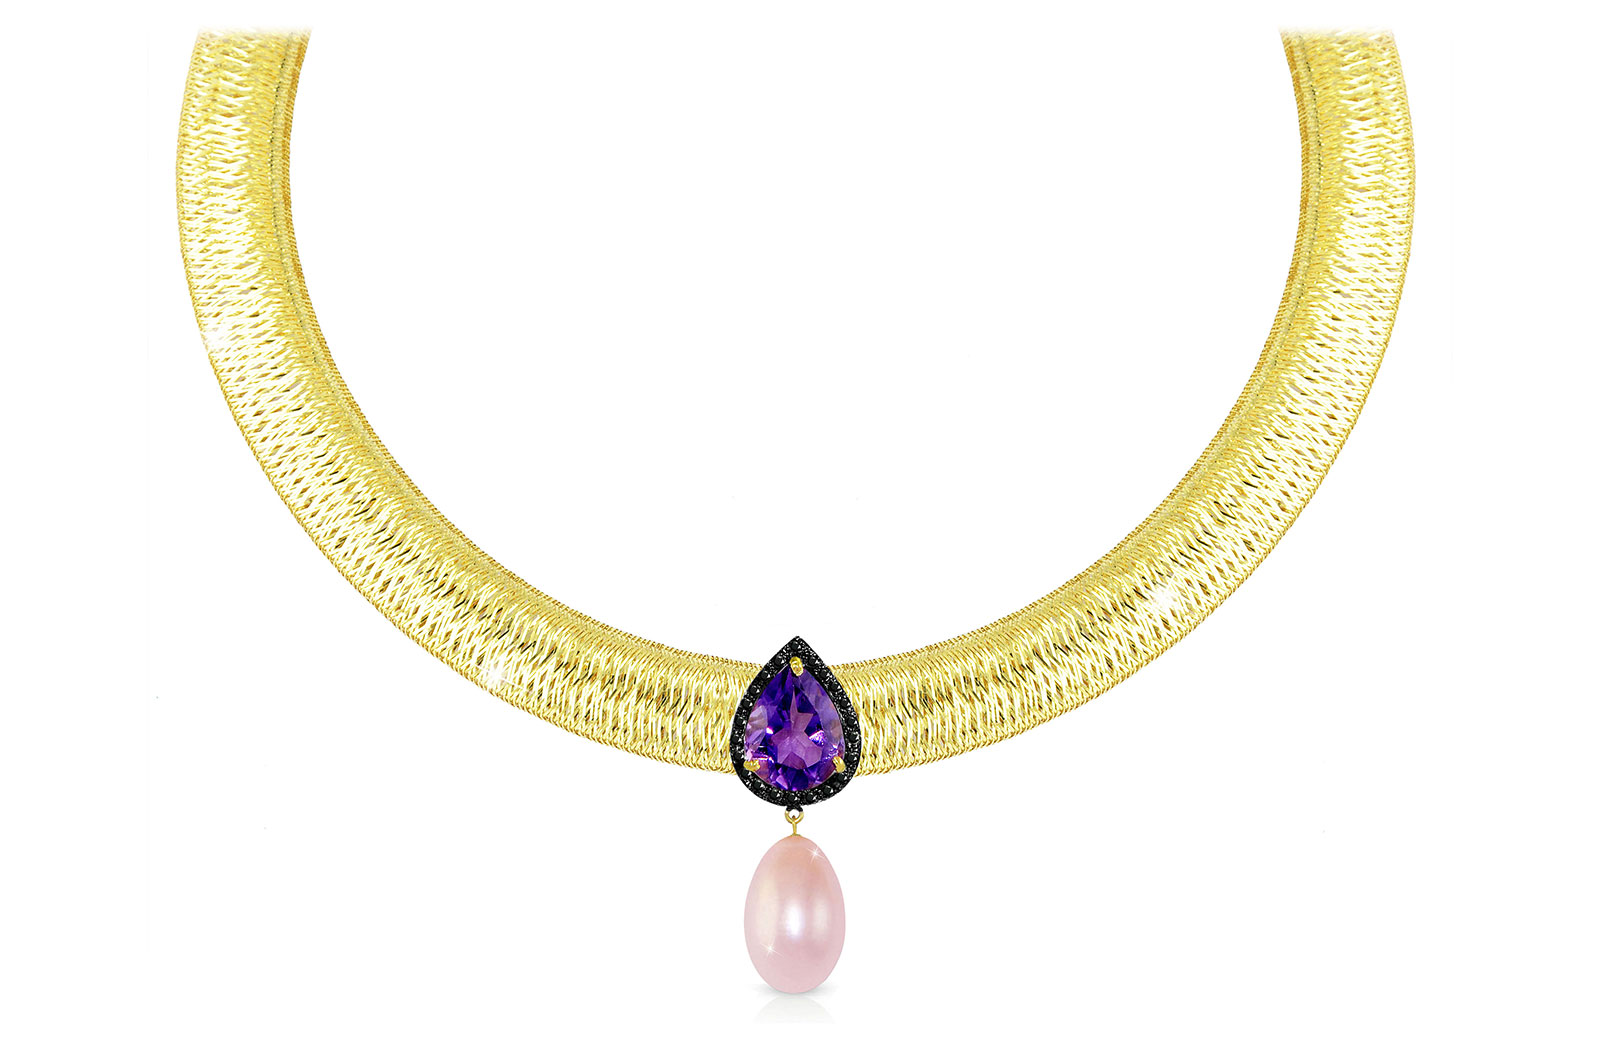 Vera Perla 18K Gold 0.12ct  Black Diamonds, Amethyst and 13mm Purple Pearl  Necklace